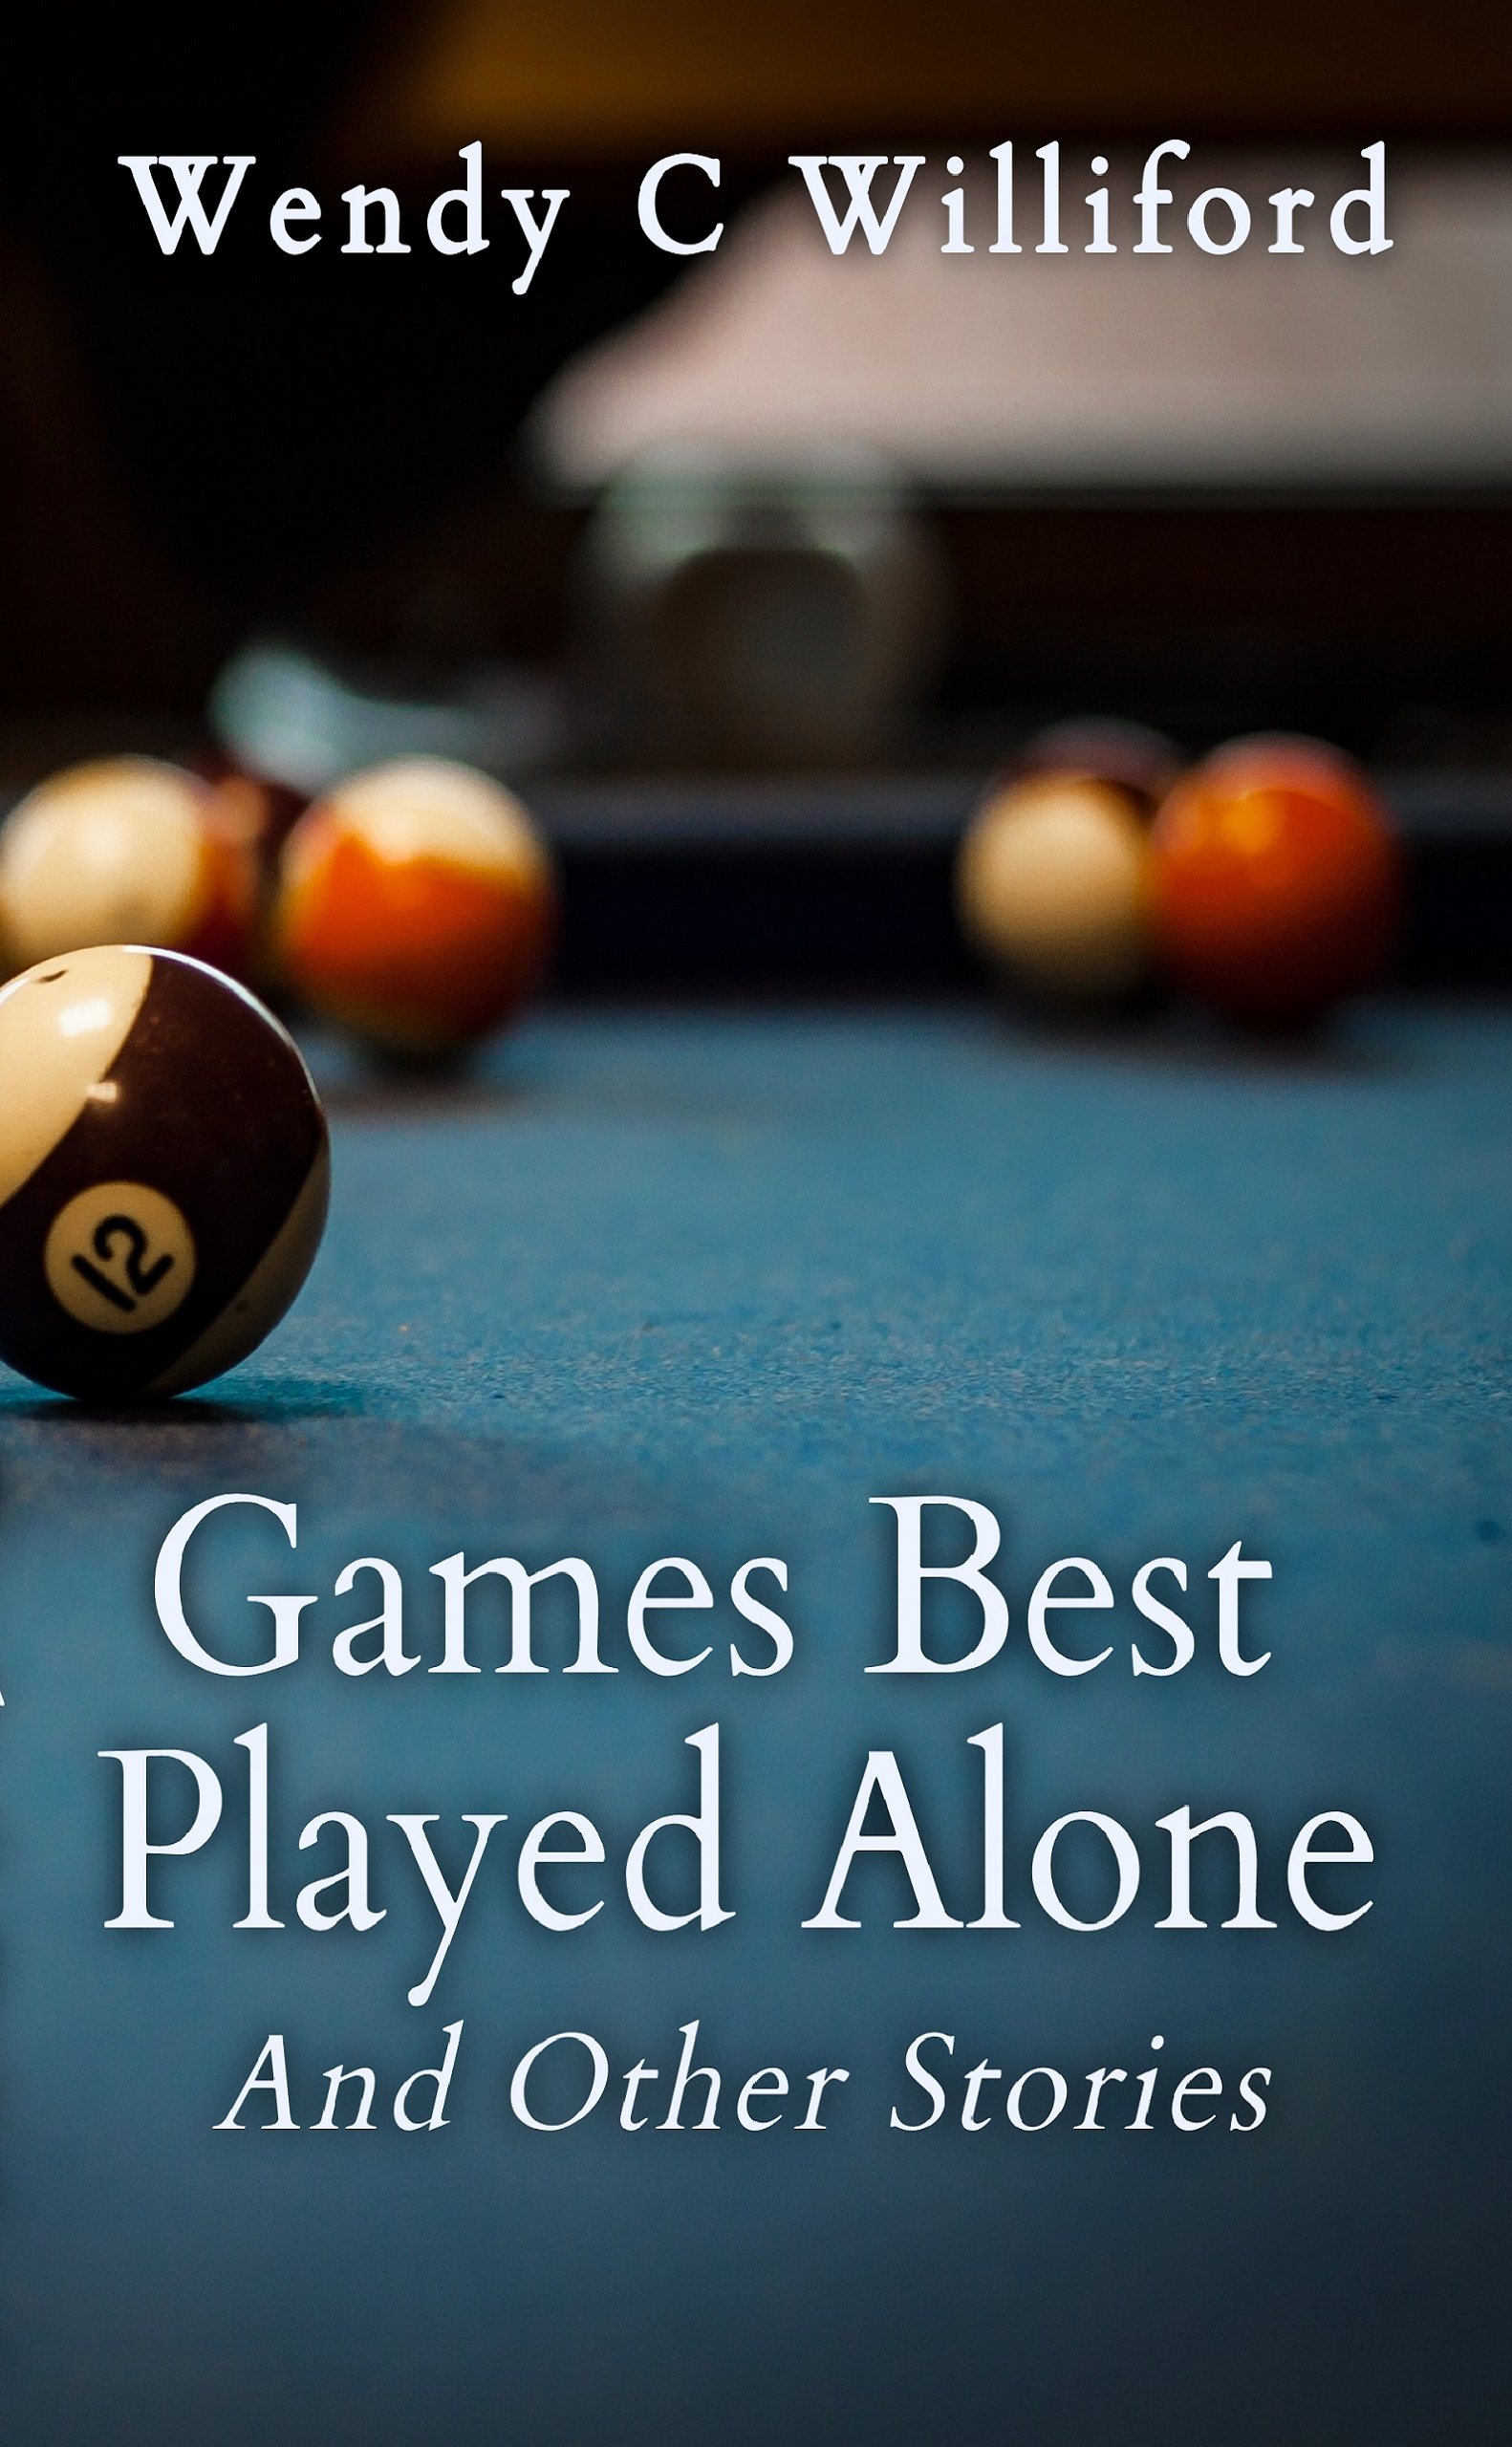 Games Best Played Alone